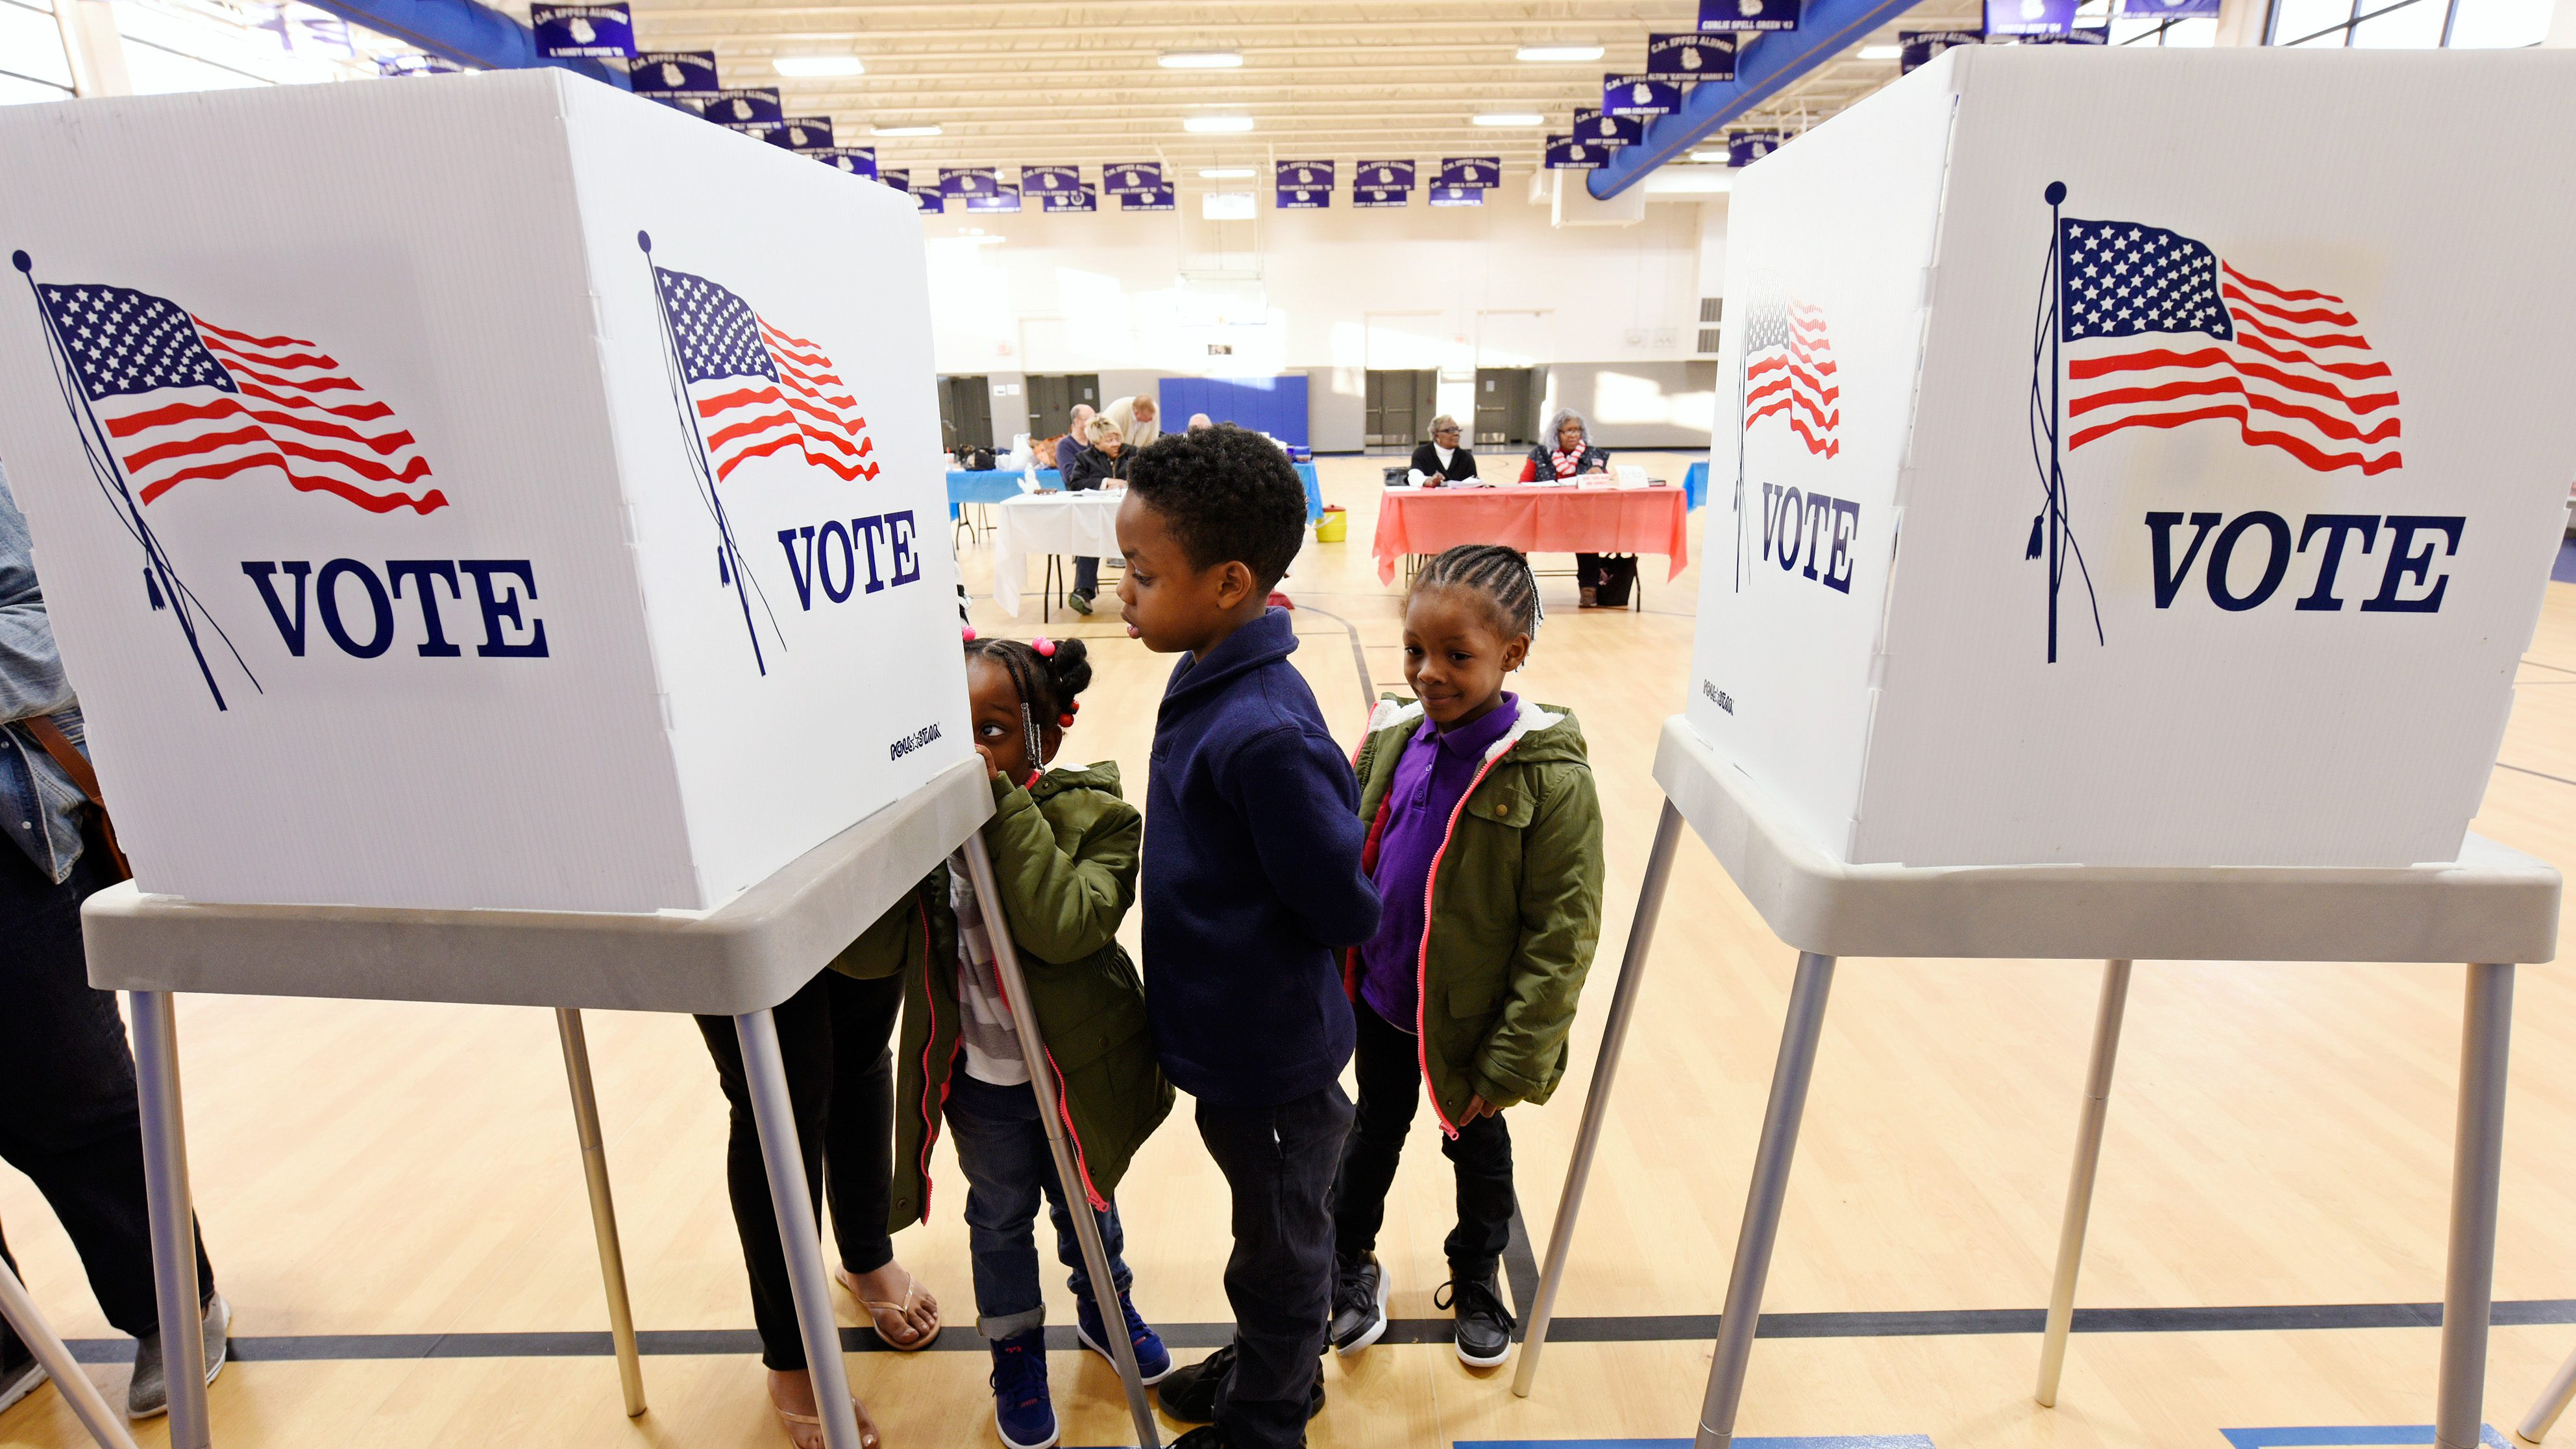 Children watch their mother vote during the U.S. general election in Greenville, North Carolina, U.S. on November 8, 2016.  REUTERS/Jonathan Drake - HT1ECB81PYVBM